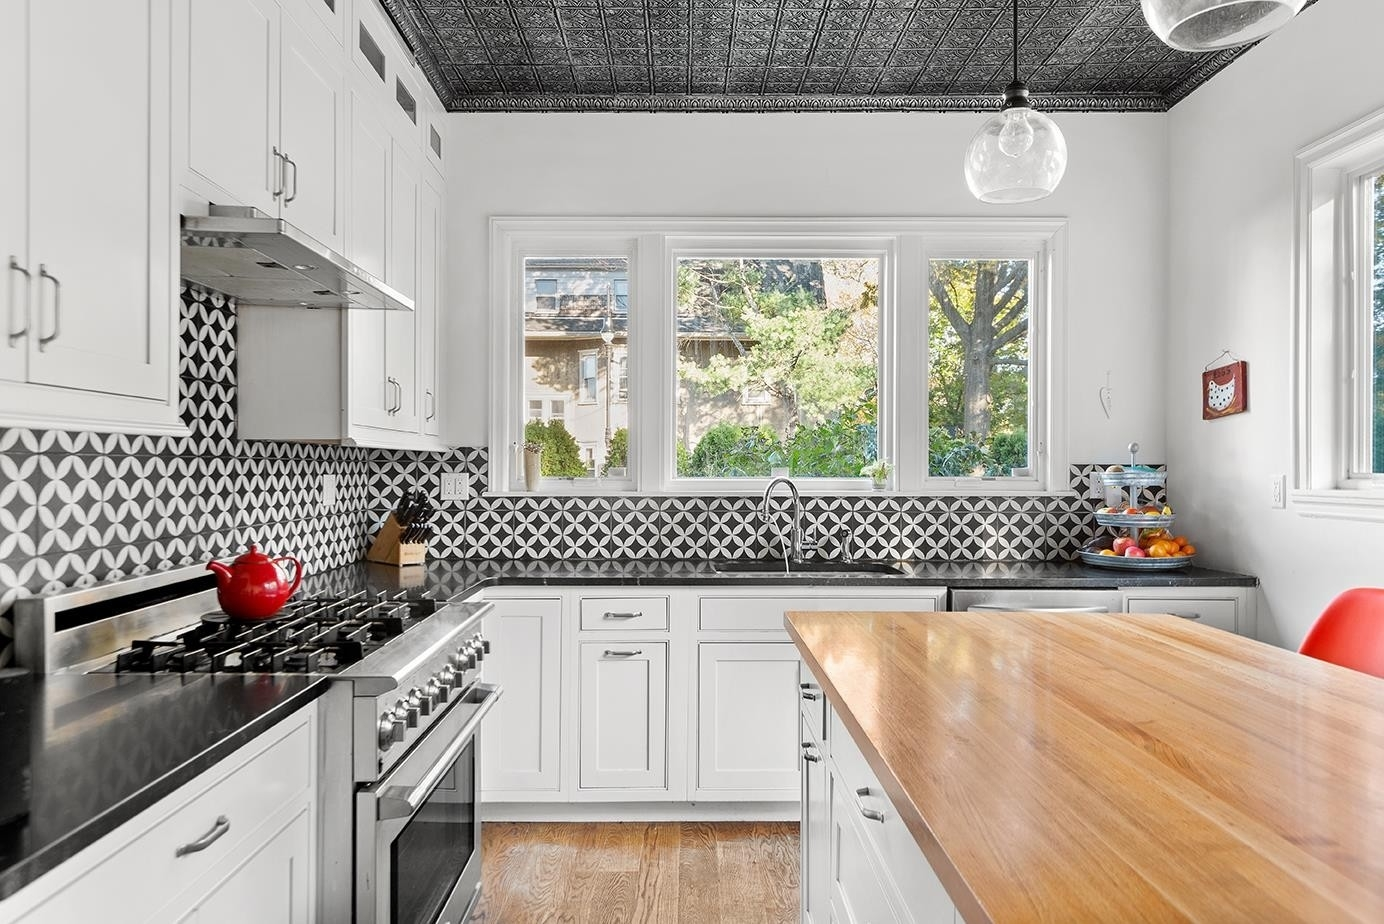 3. Single Family Townhouse for Sale at Ditmas Park, Brooklyn, NY 11218